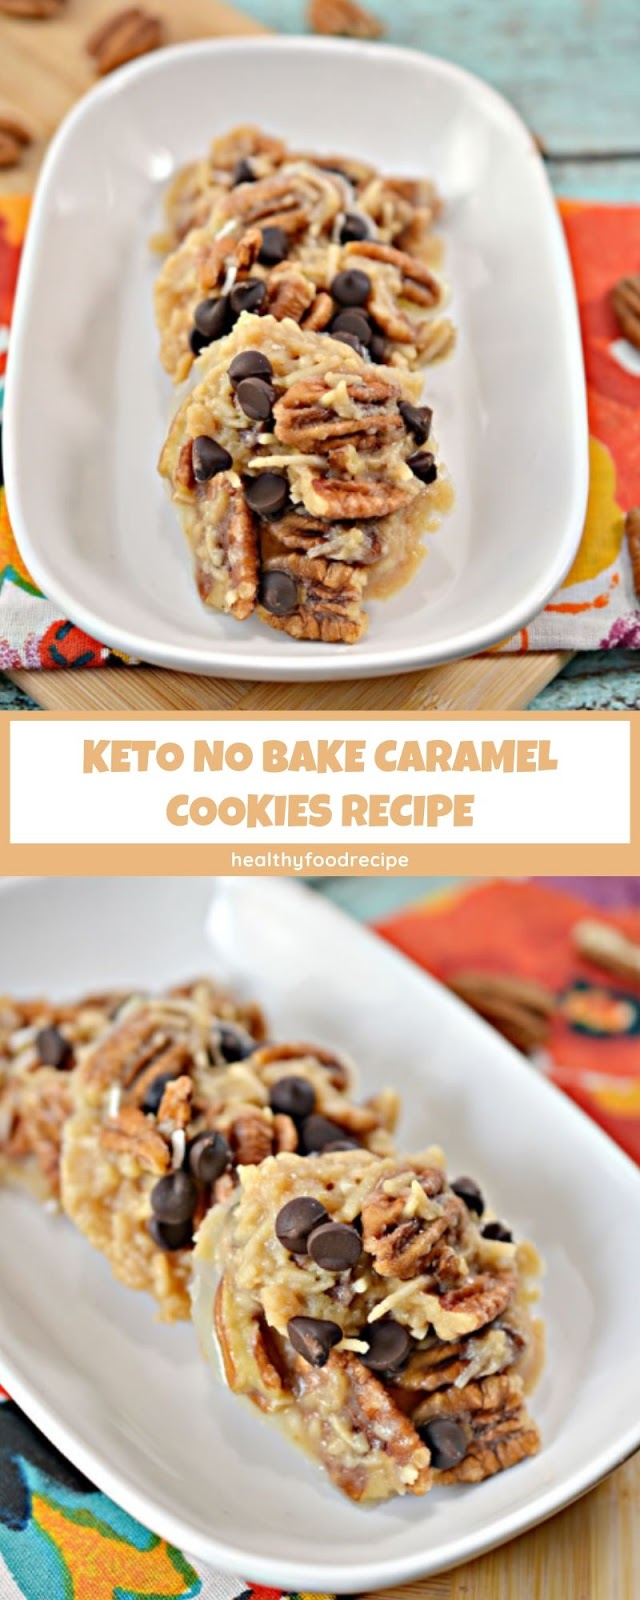 KETO NO BAKE CARAMEL COOKIES RECIPE